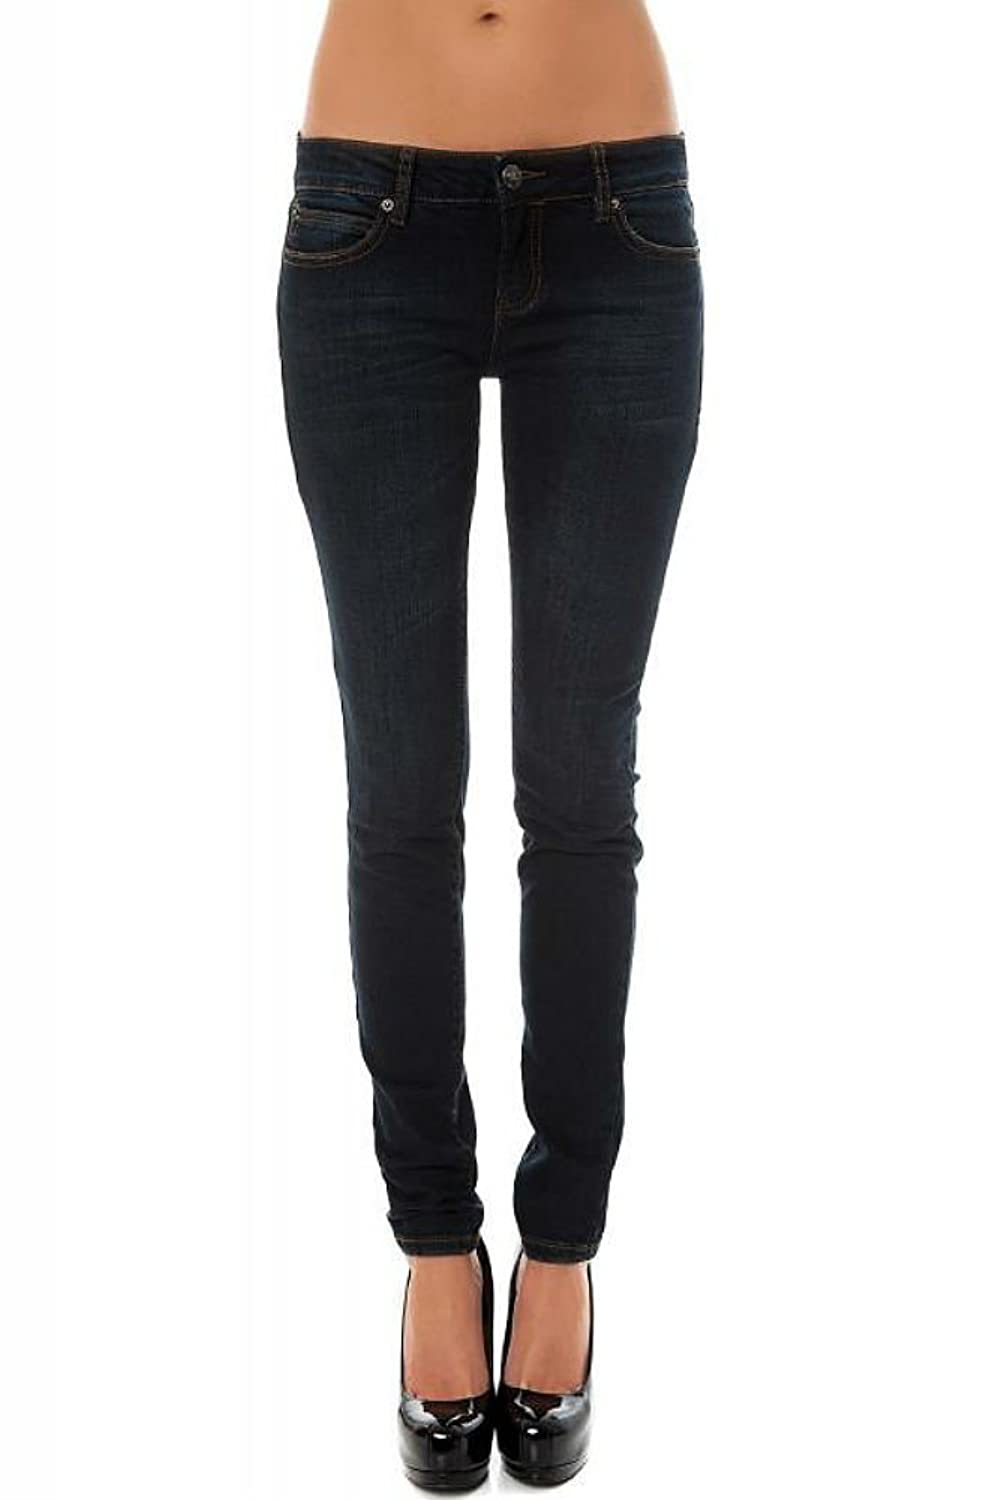 Lip Service Women's Indigo Denim Punk Rocker Needle Fit Skinny Jeans